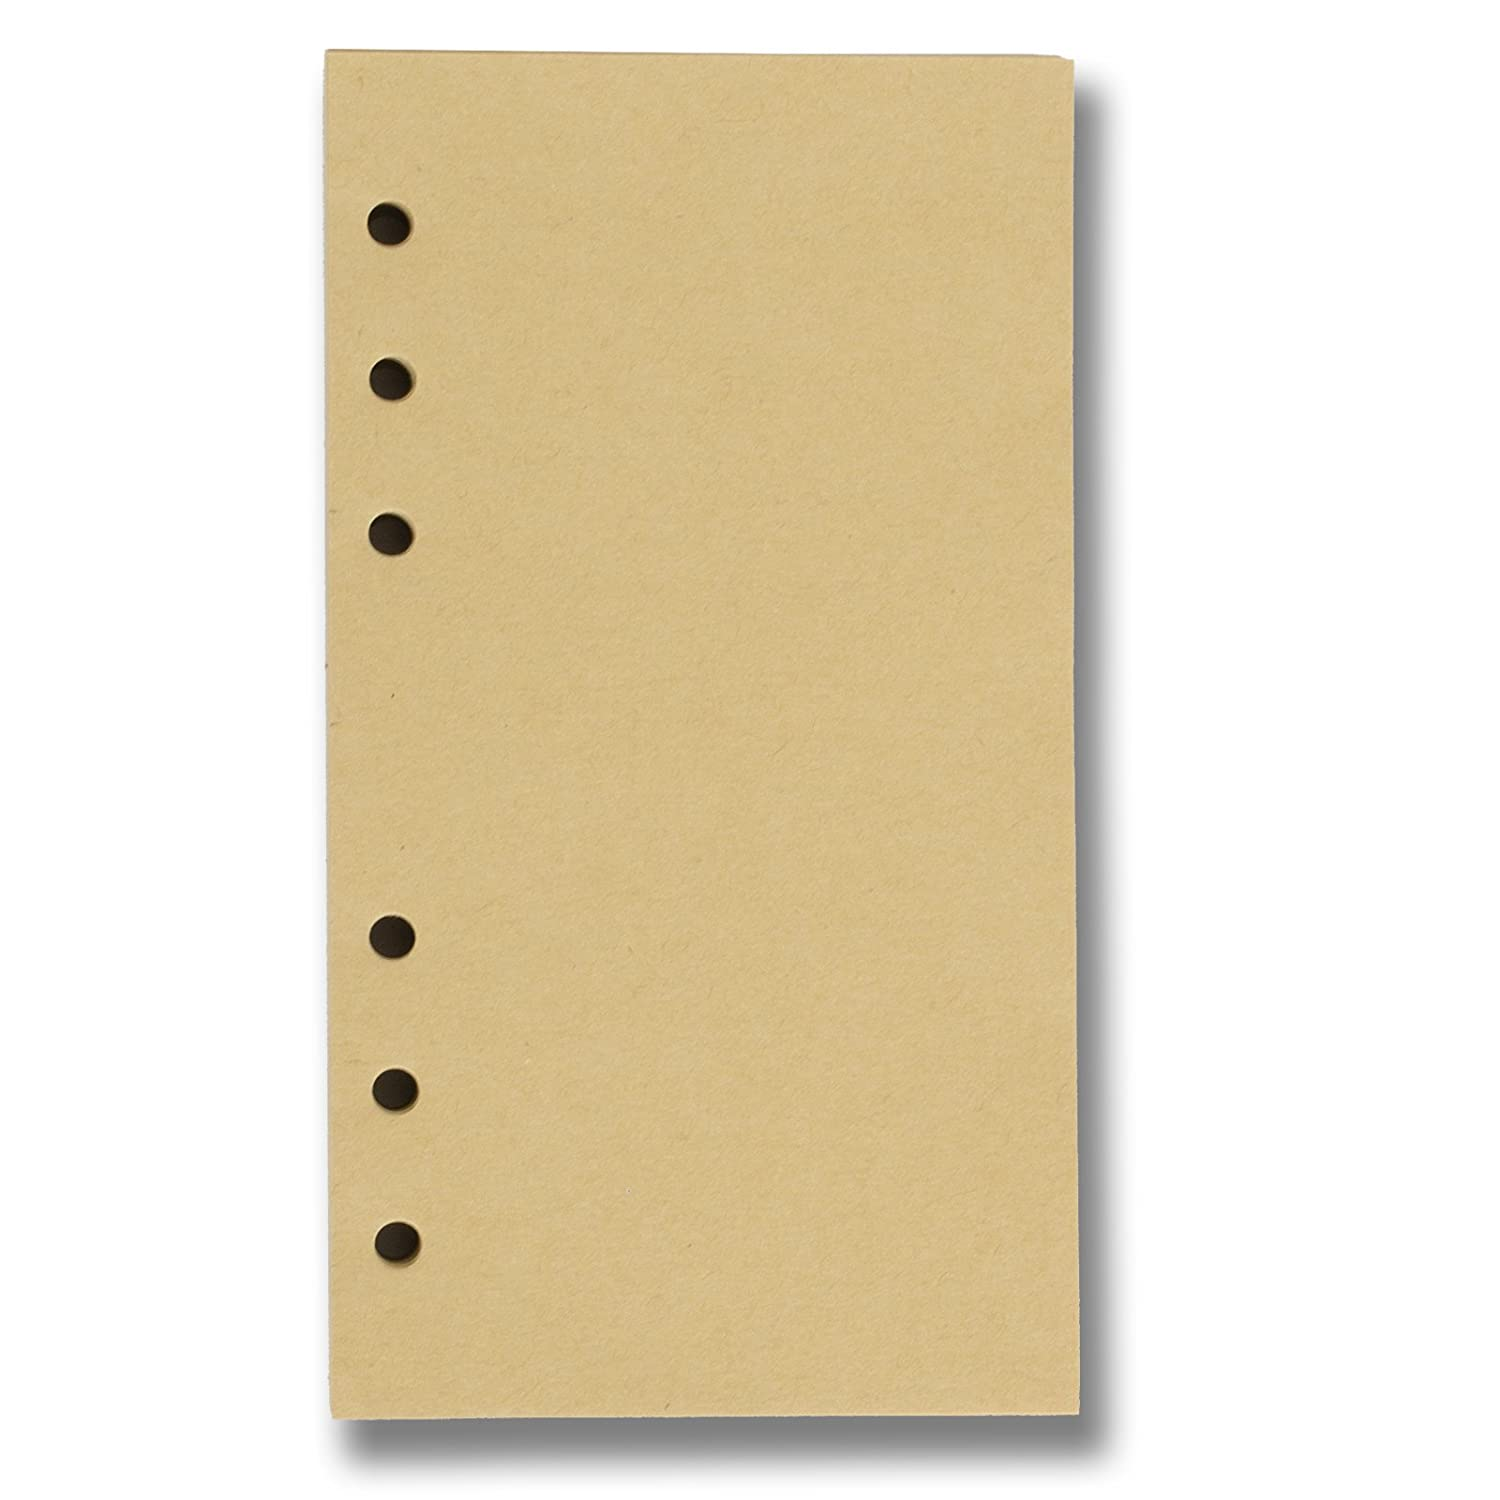 Refills 6 Hole Blank Craft Paper for A5 Loose Leaf Binder Notebook 5.7 X 8.25 Inches 100 sheets / 200 pages C&L Workshop